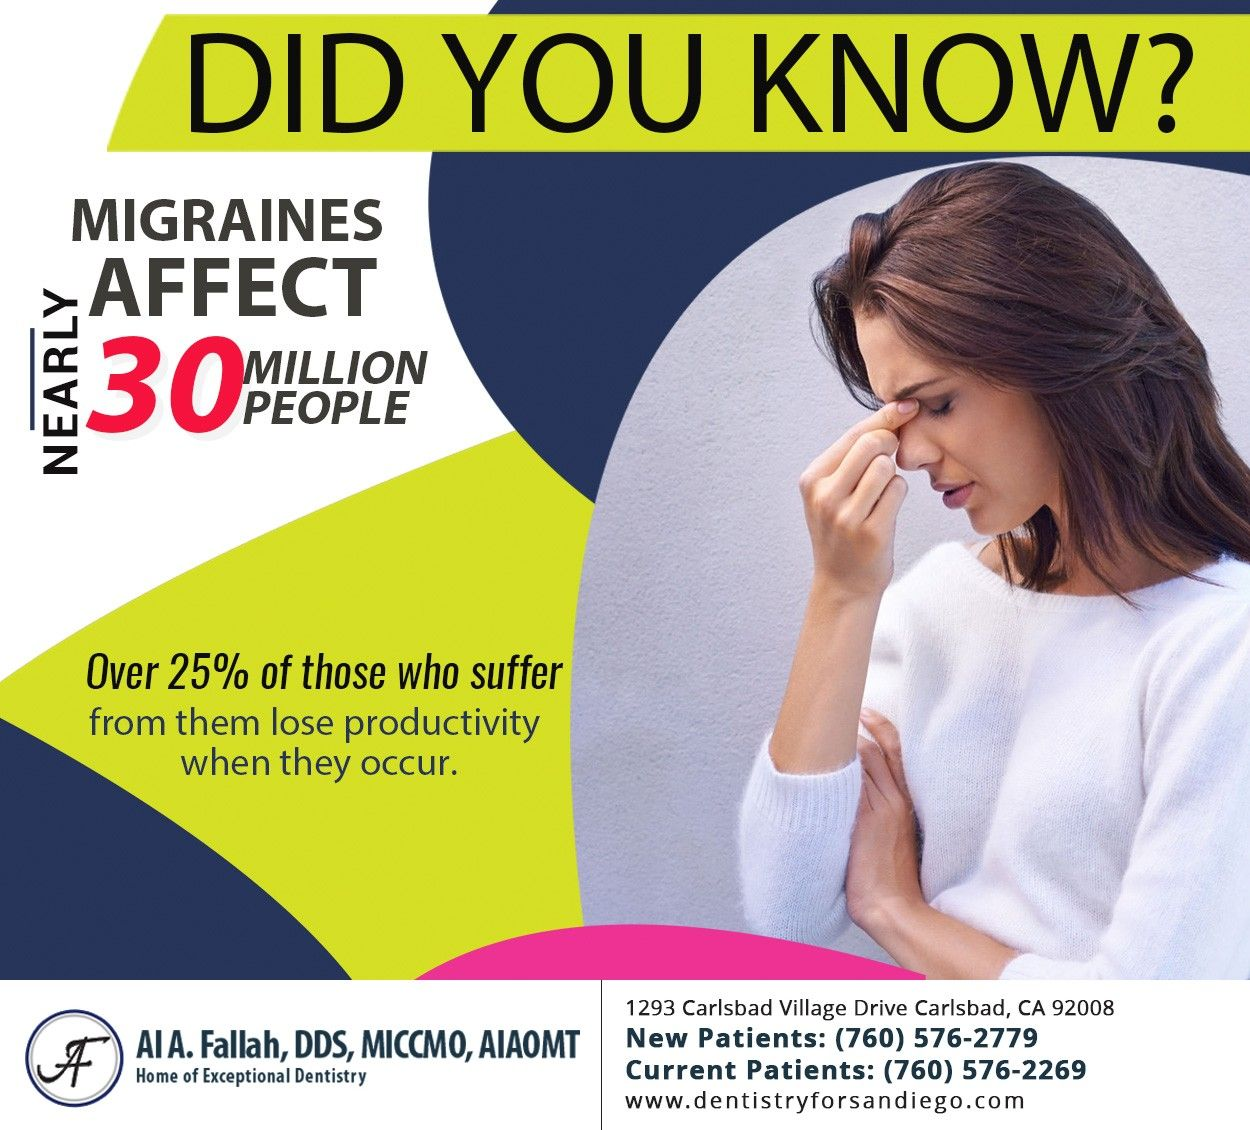 You don't have to live with migraines. If you experience frequent #headaches accompanied by #nausea and sensitivity to light or sound, call us for an evaluation at (760) 576-2779 / (760) 576-2269  #Migraines  #carlsbad #CA #dentistryforsandiego #dentalfacts